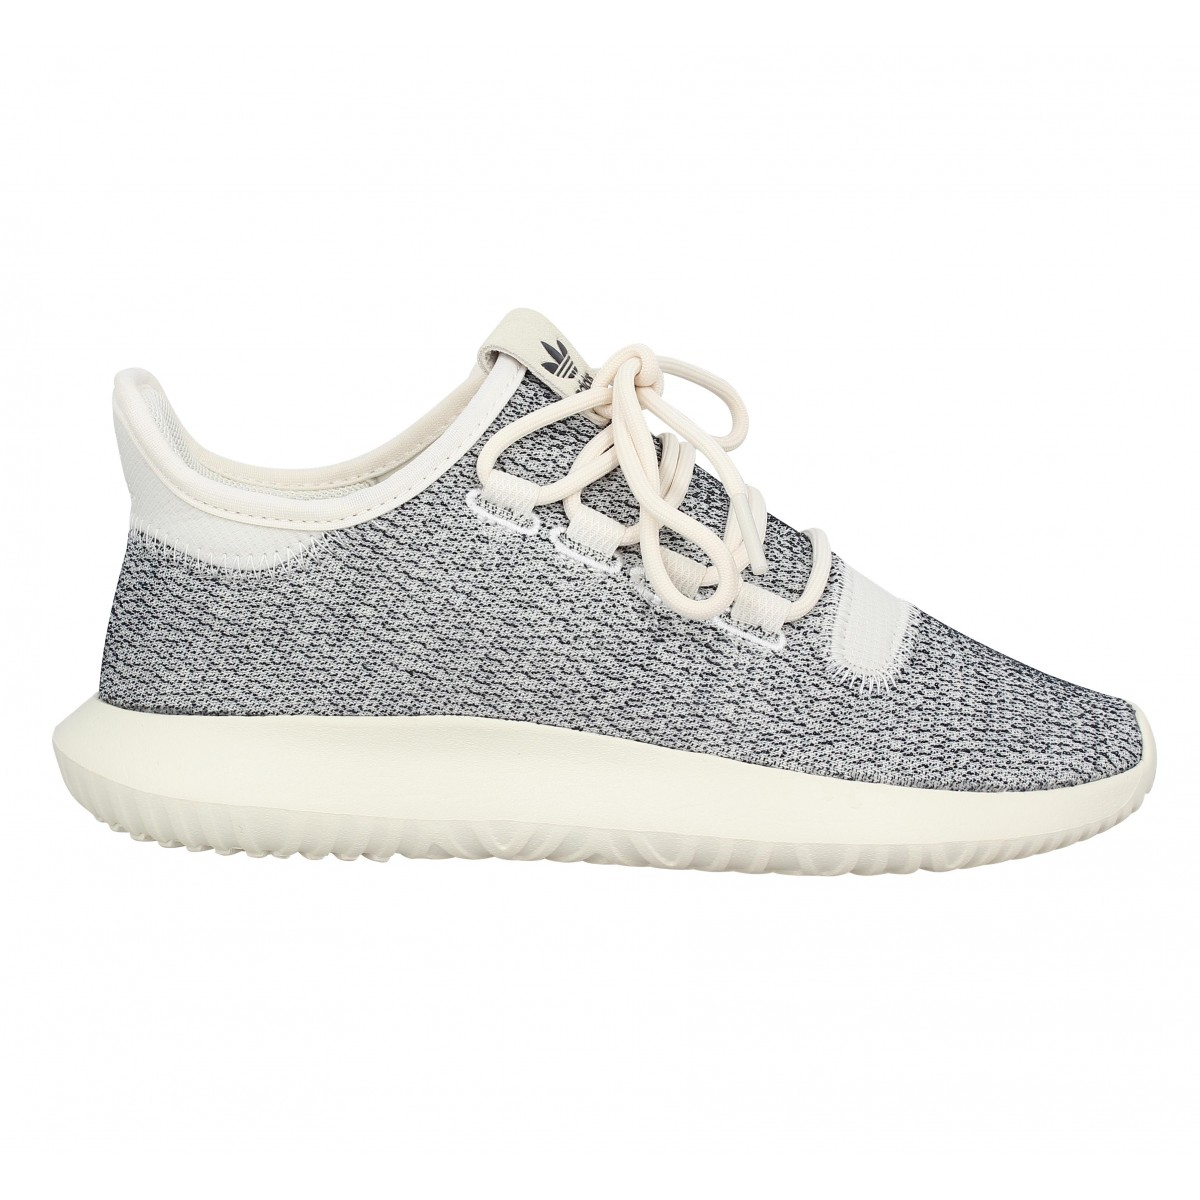 new concept a51e8 06743 Baskets ADIDAS Tubular Shadow toile Femme Blanc Casse. 1